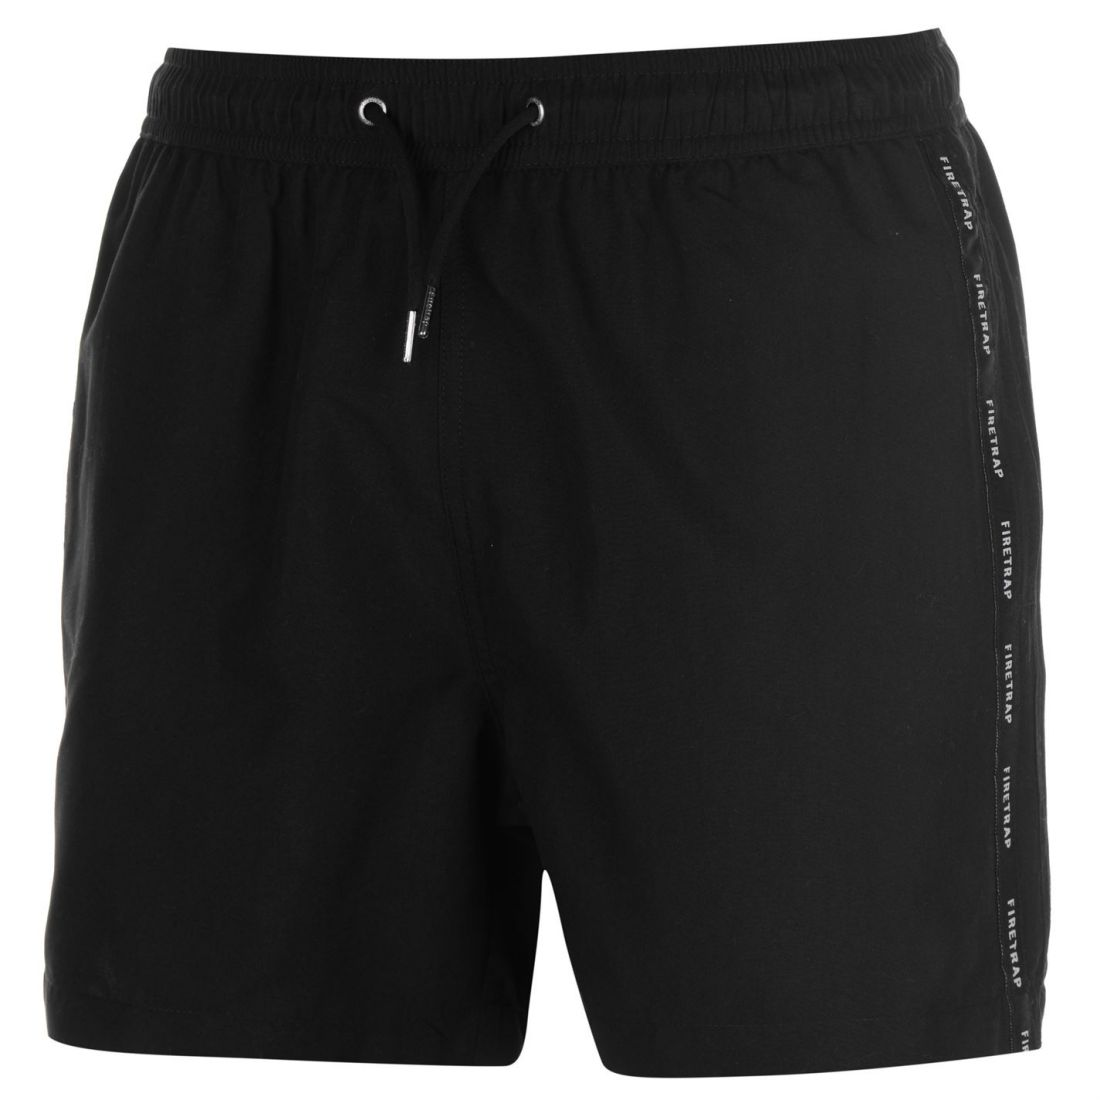 9faf950650fb5 Firetrap Mens Taped Swim Shorts Pants Trousers Bottoms Mesh Drawstring 2 2  of 4 ...